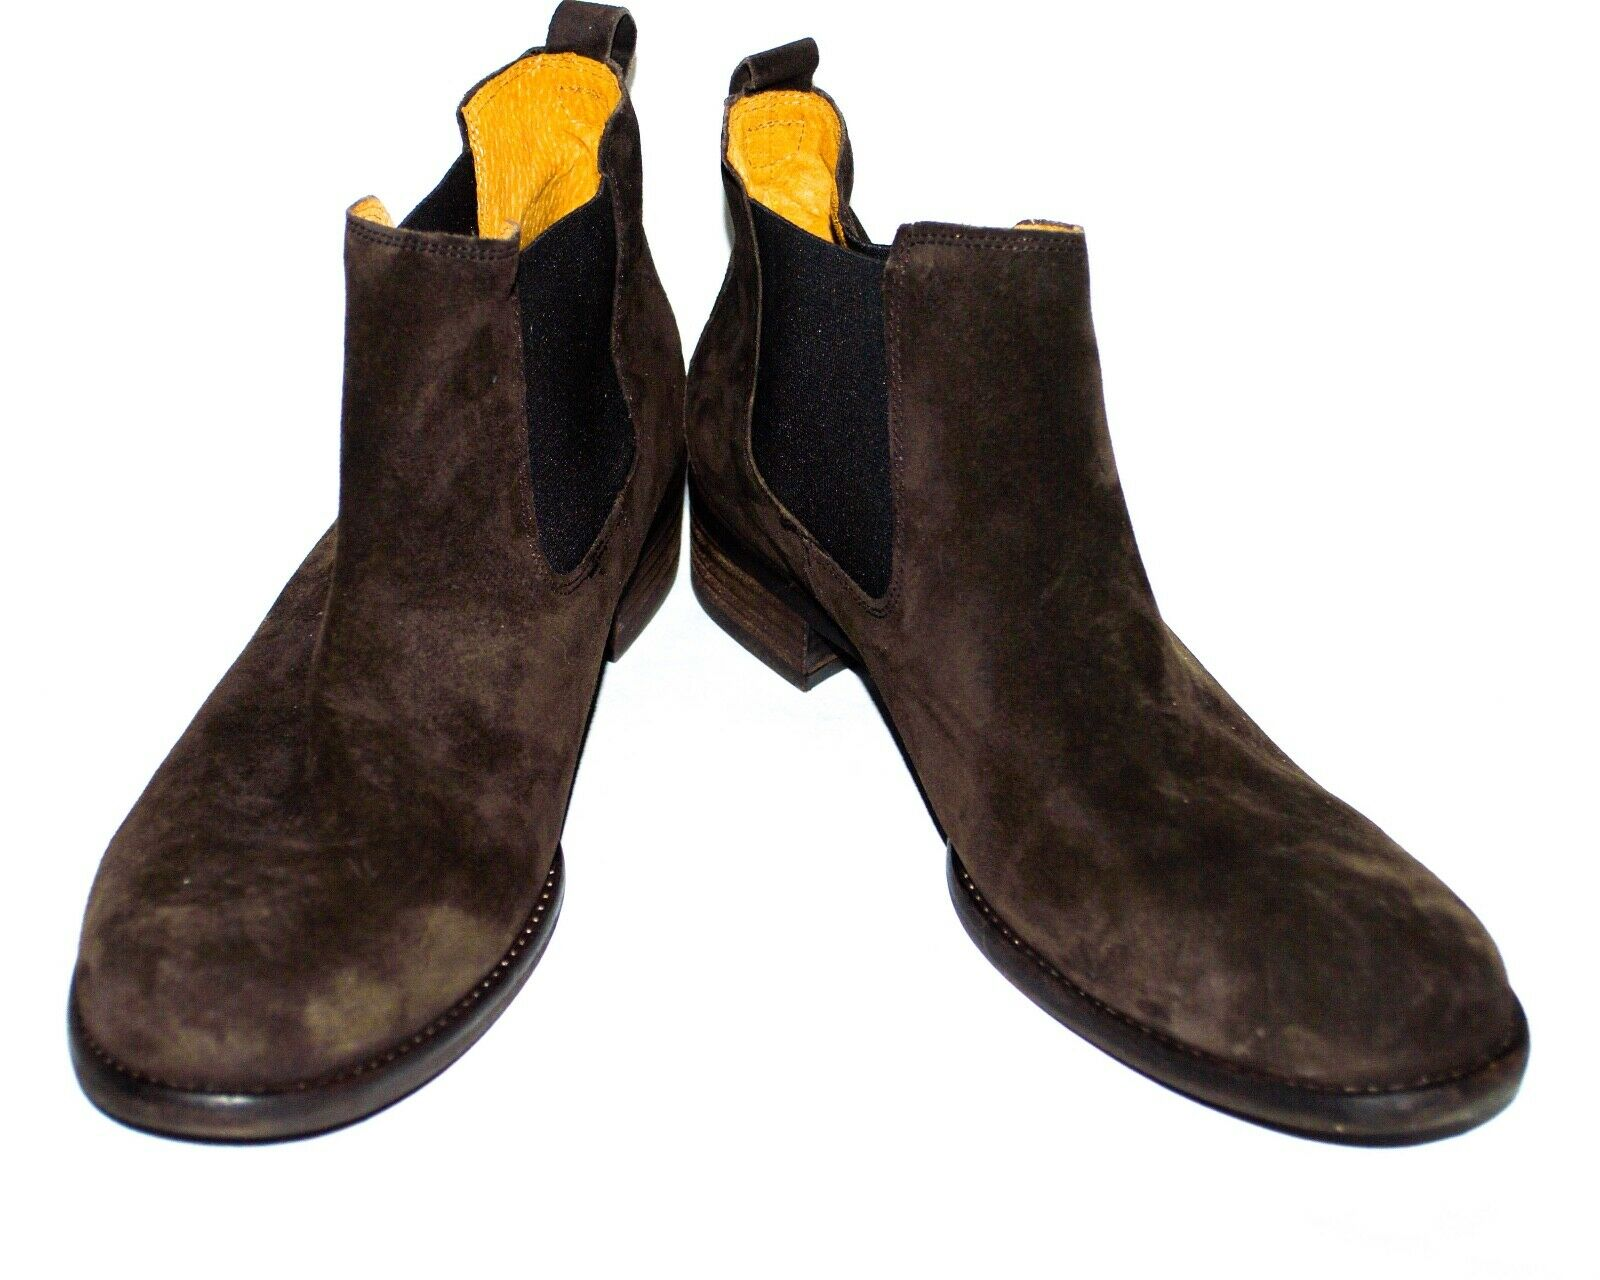 Gabor Zodiac Suede Chelsea 91.640 Brown Boots. US Size 8.5, UK 6.5, Eur 39.5